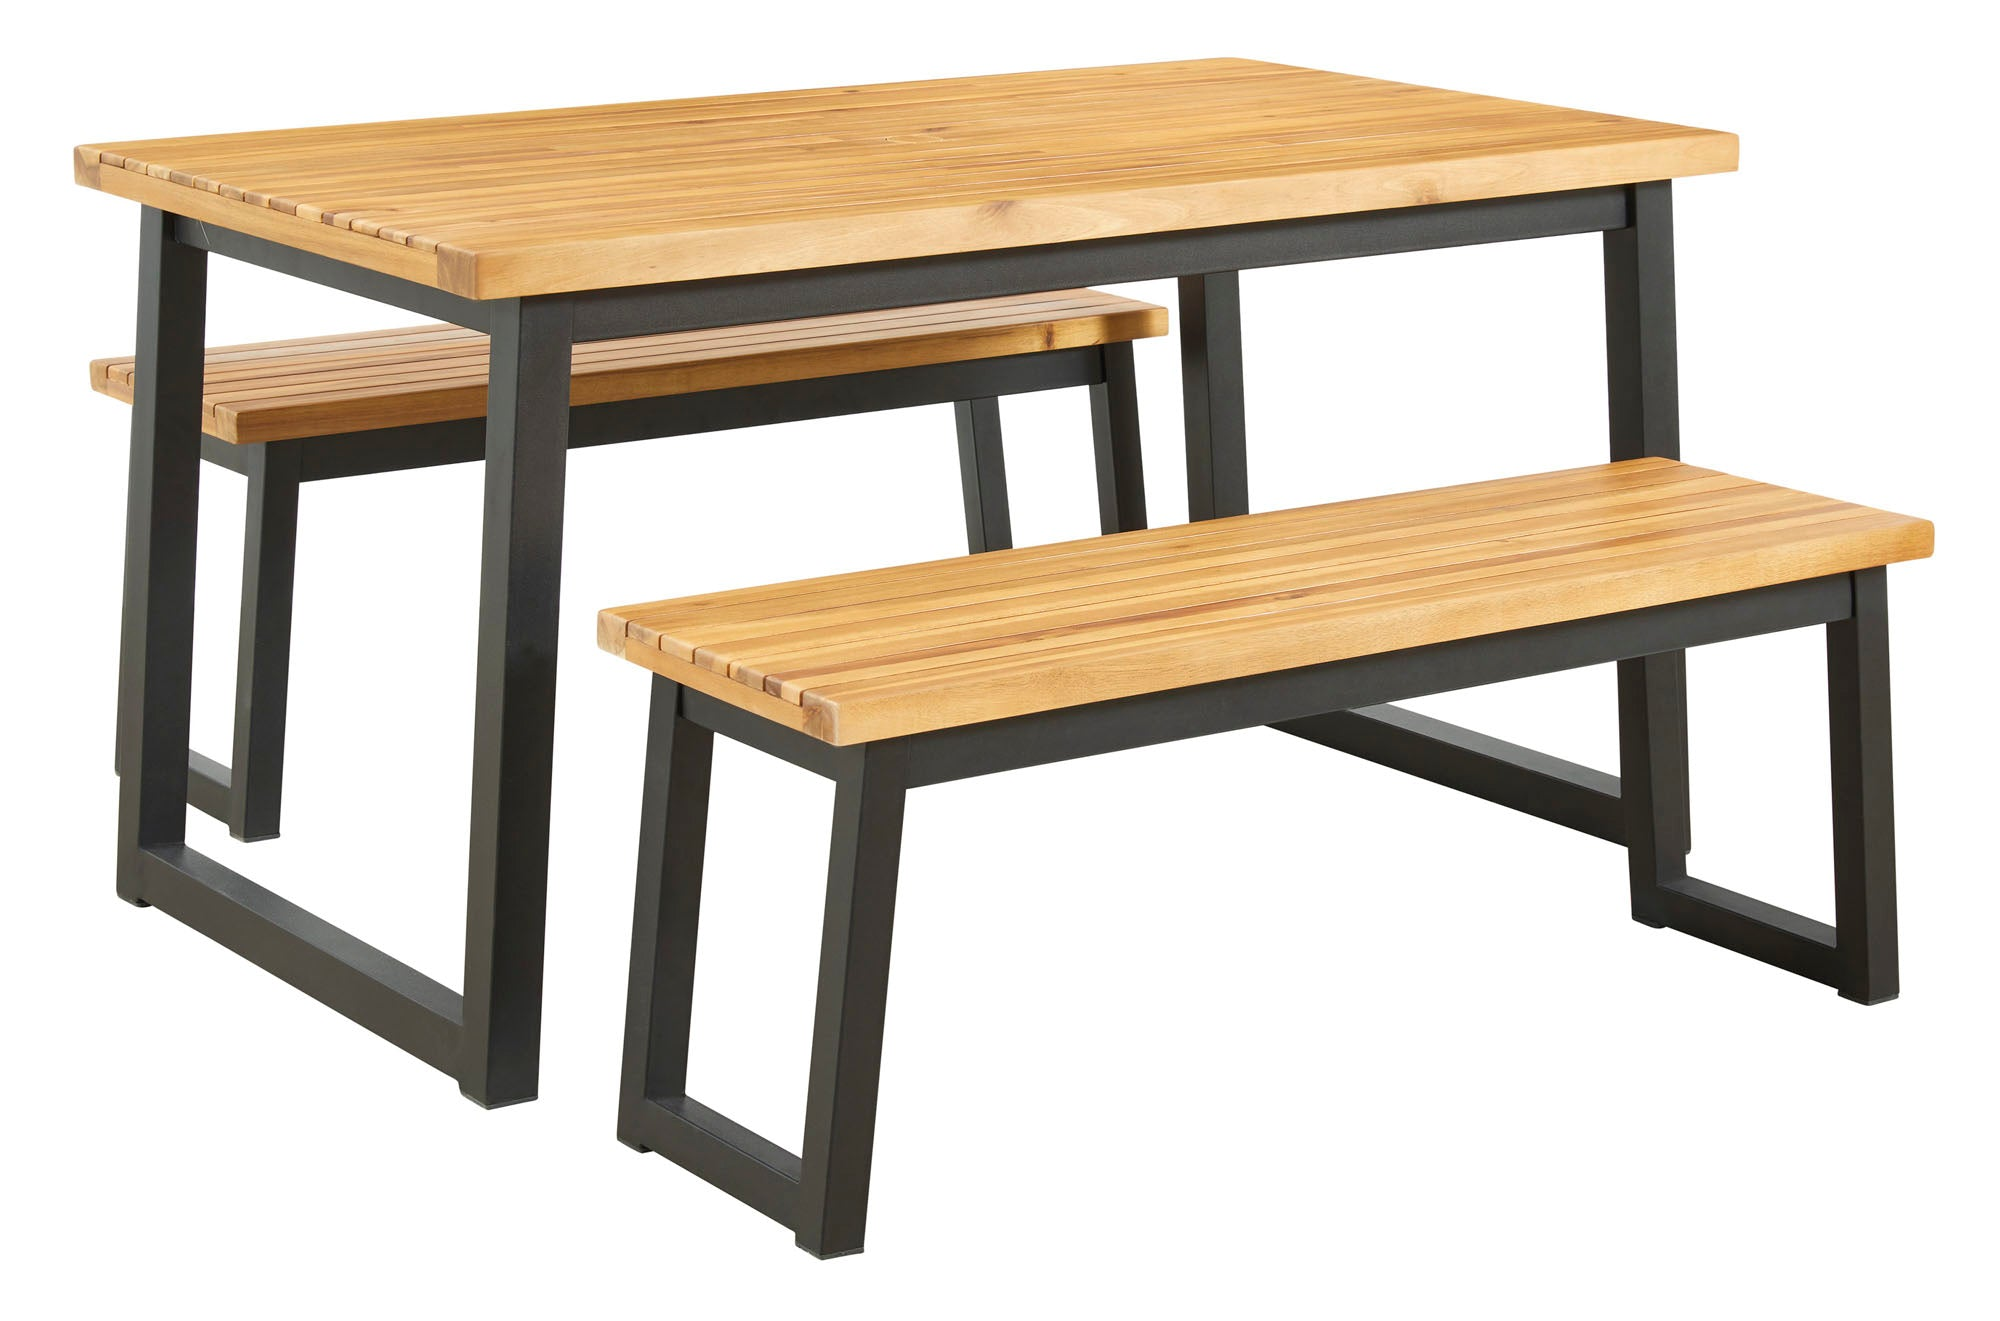 Town Wood 3 Piece Outdoor Dining Set - MJM Furniture